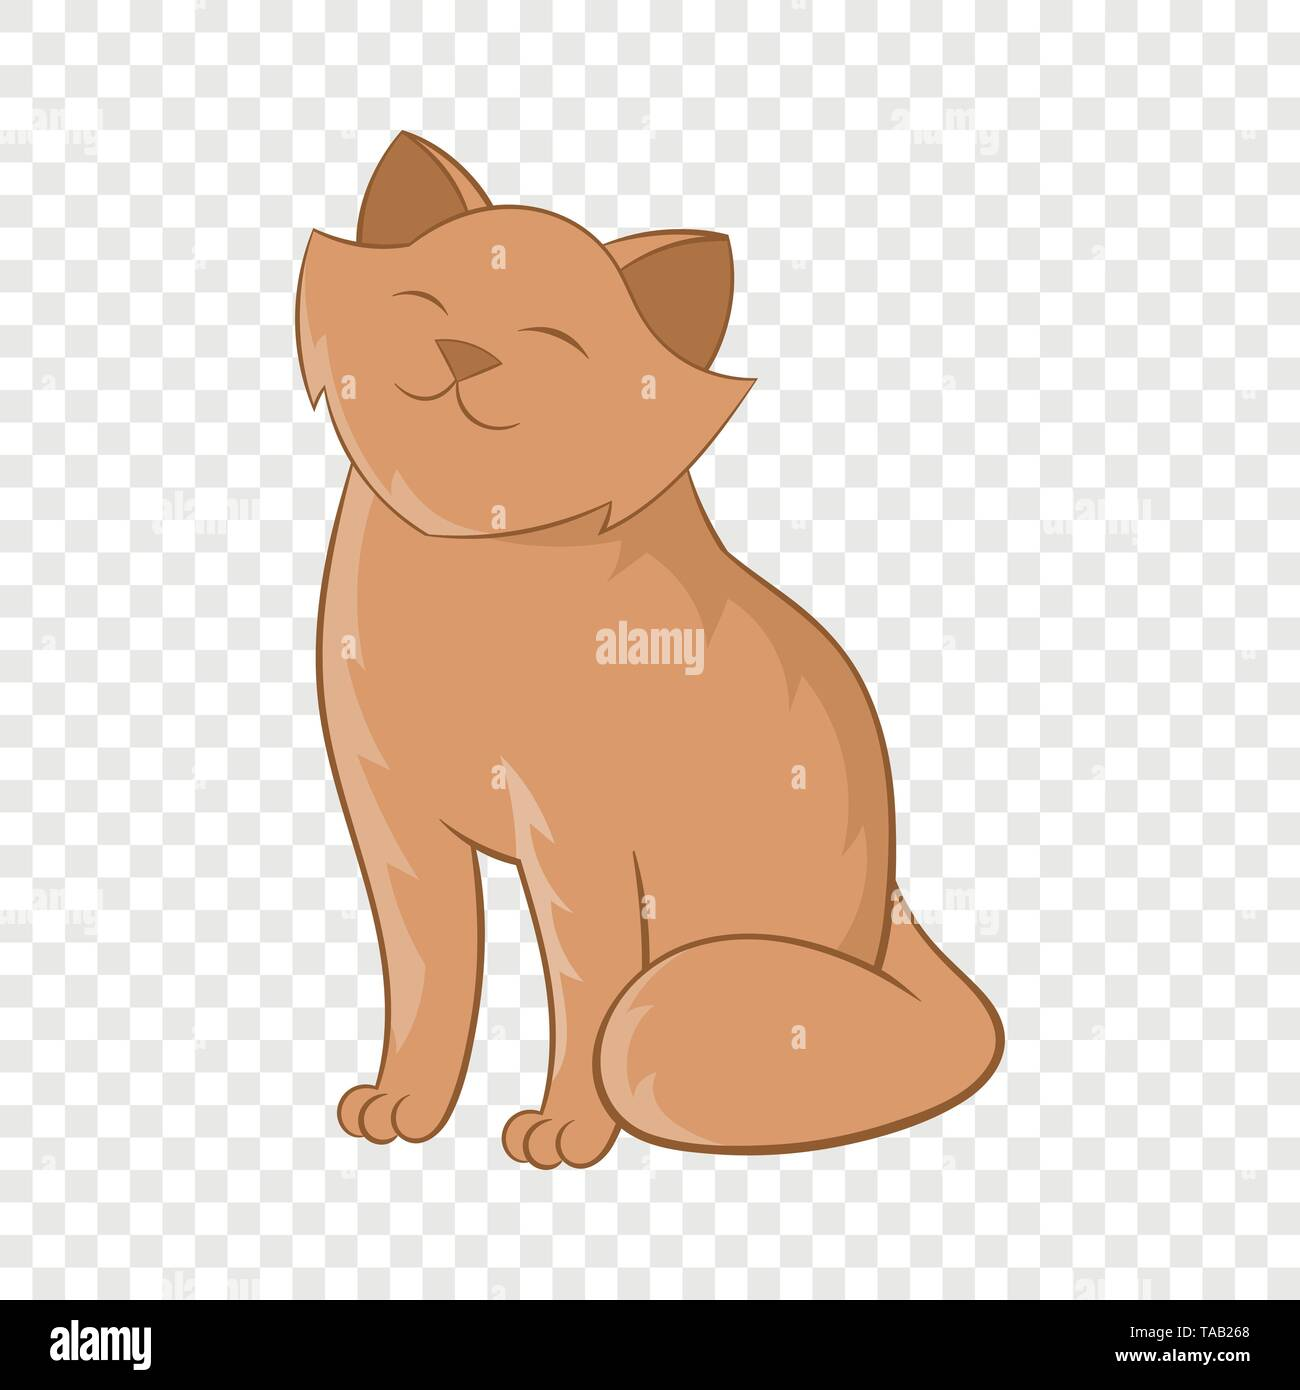 Cute cat sitting icon, cartoon style - Stock Image